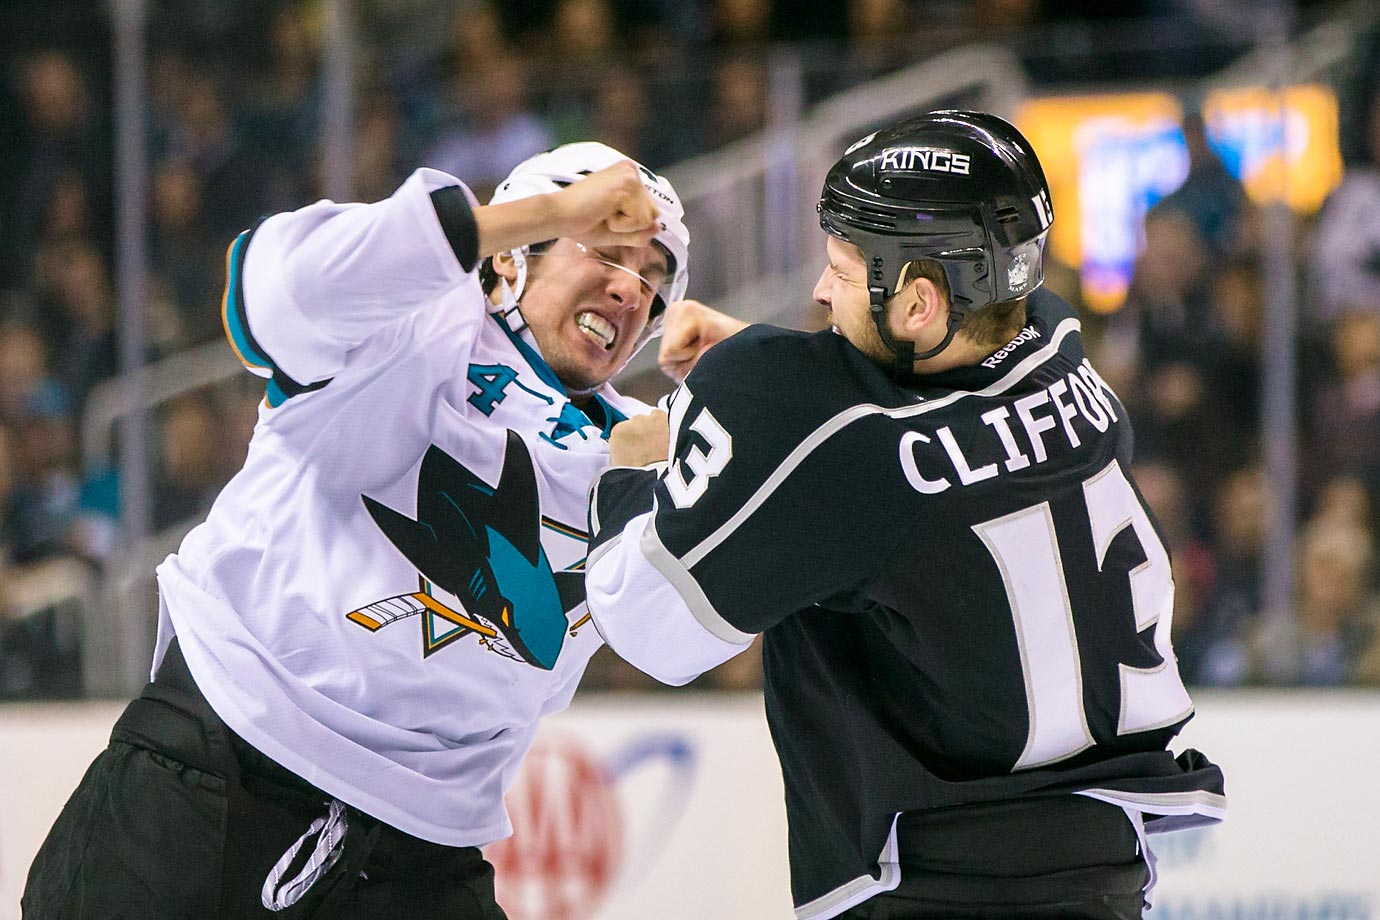 Los Angeles Kings left wing Kyle Clifford and San Jose Sharks defenseman Brenden Dillon fight in the first period.